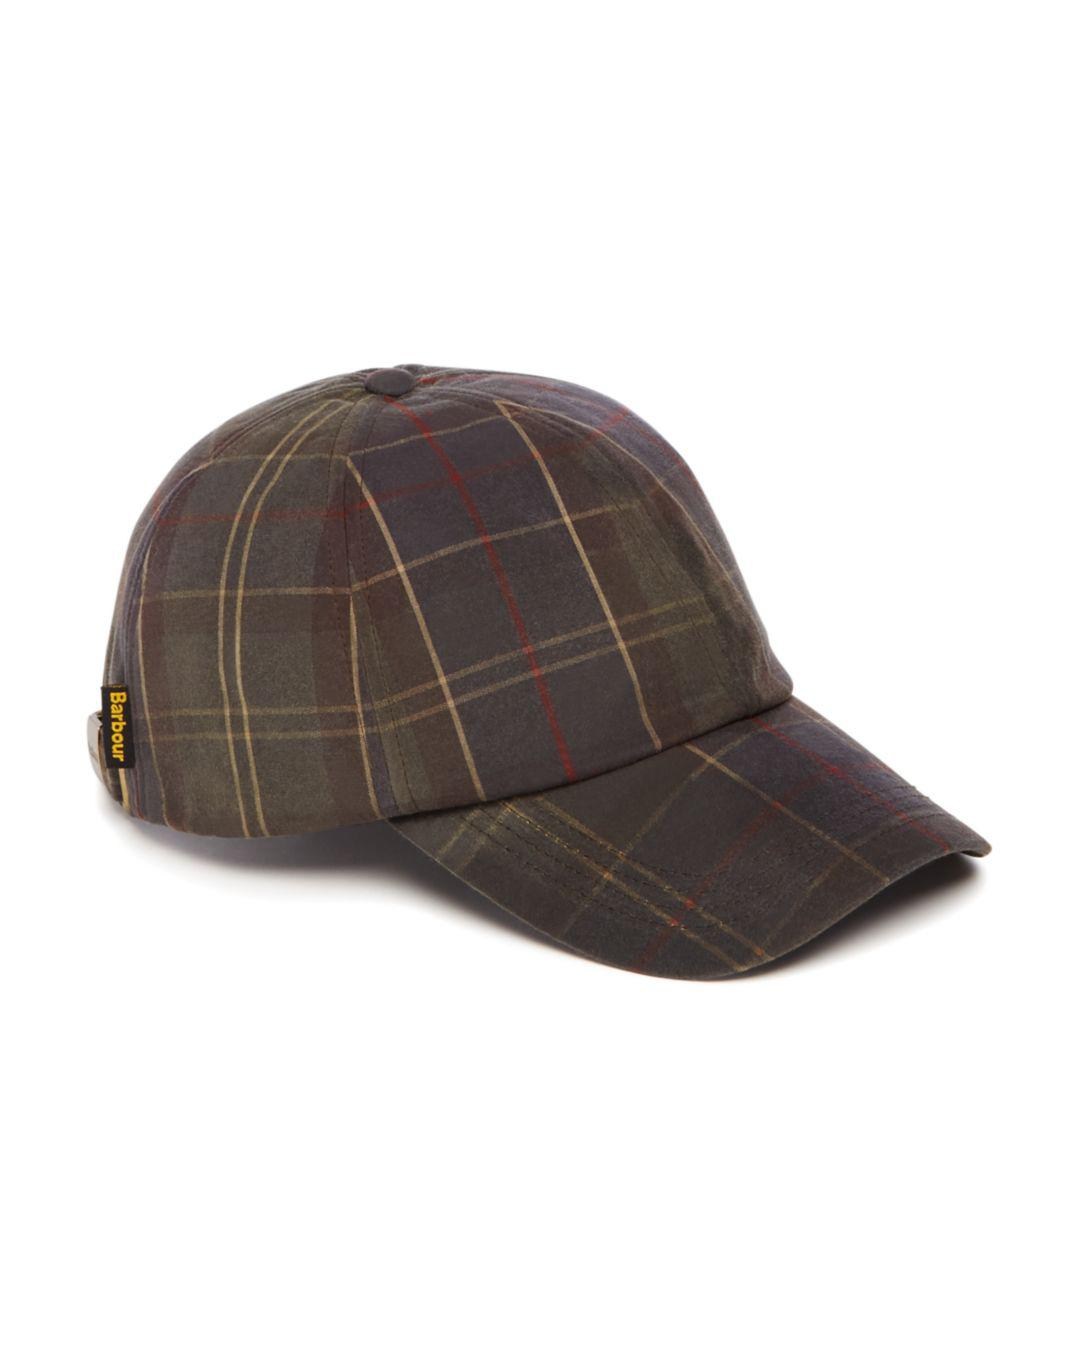 Lyst - Barbour Washed-wax Tartan Sports Cap in Brown for Men 1531e67c31f6